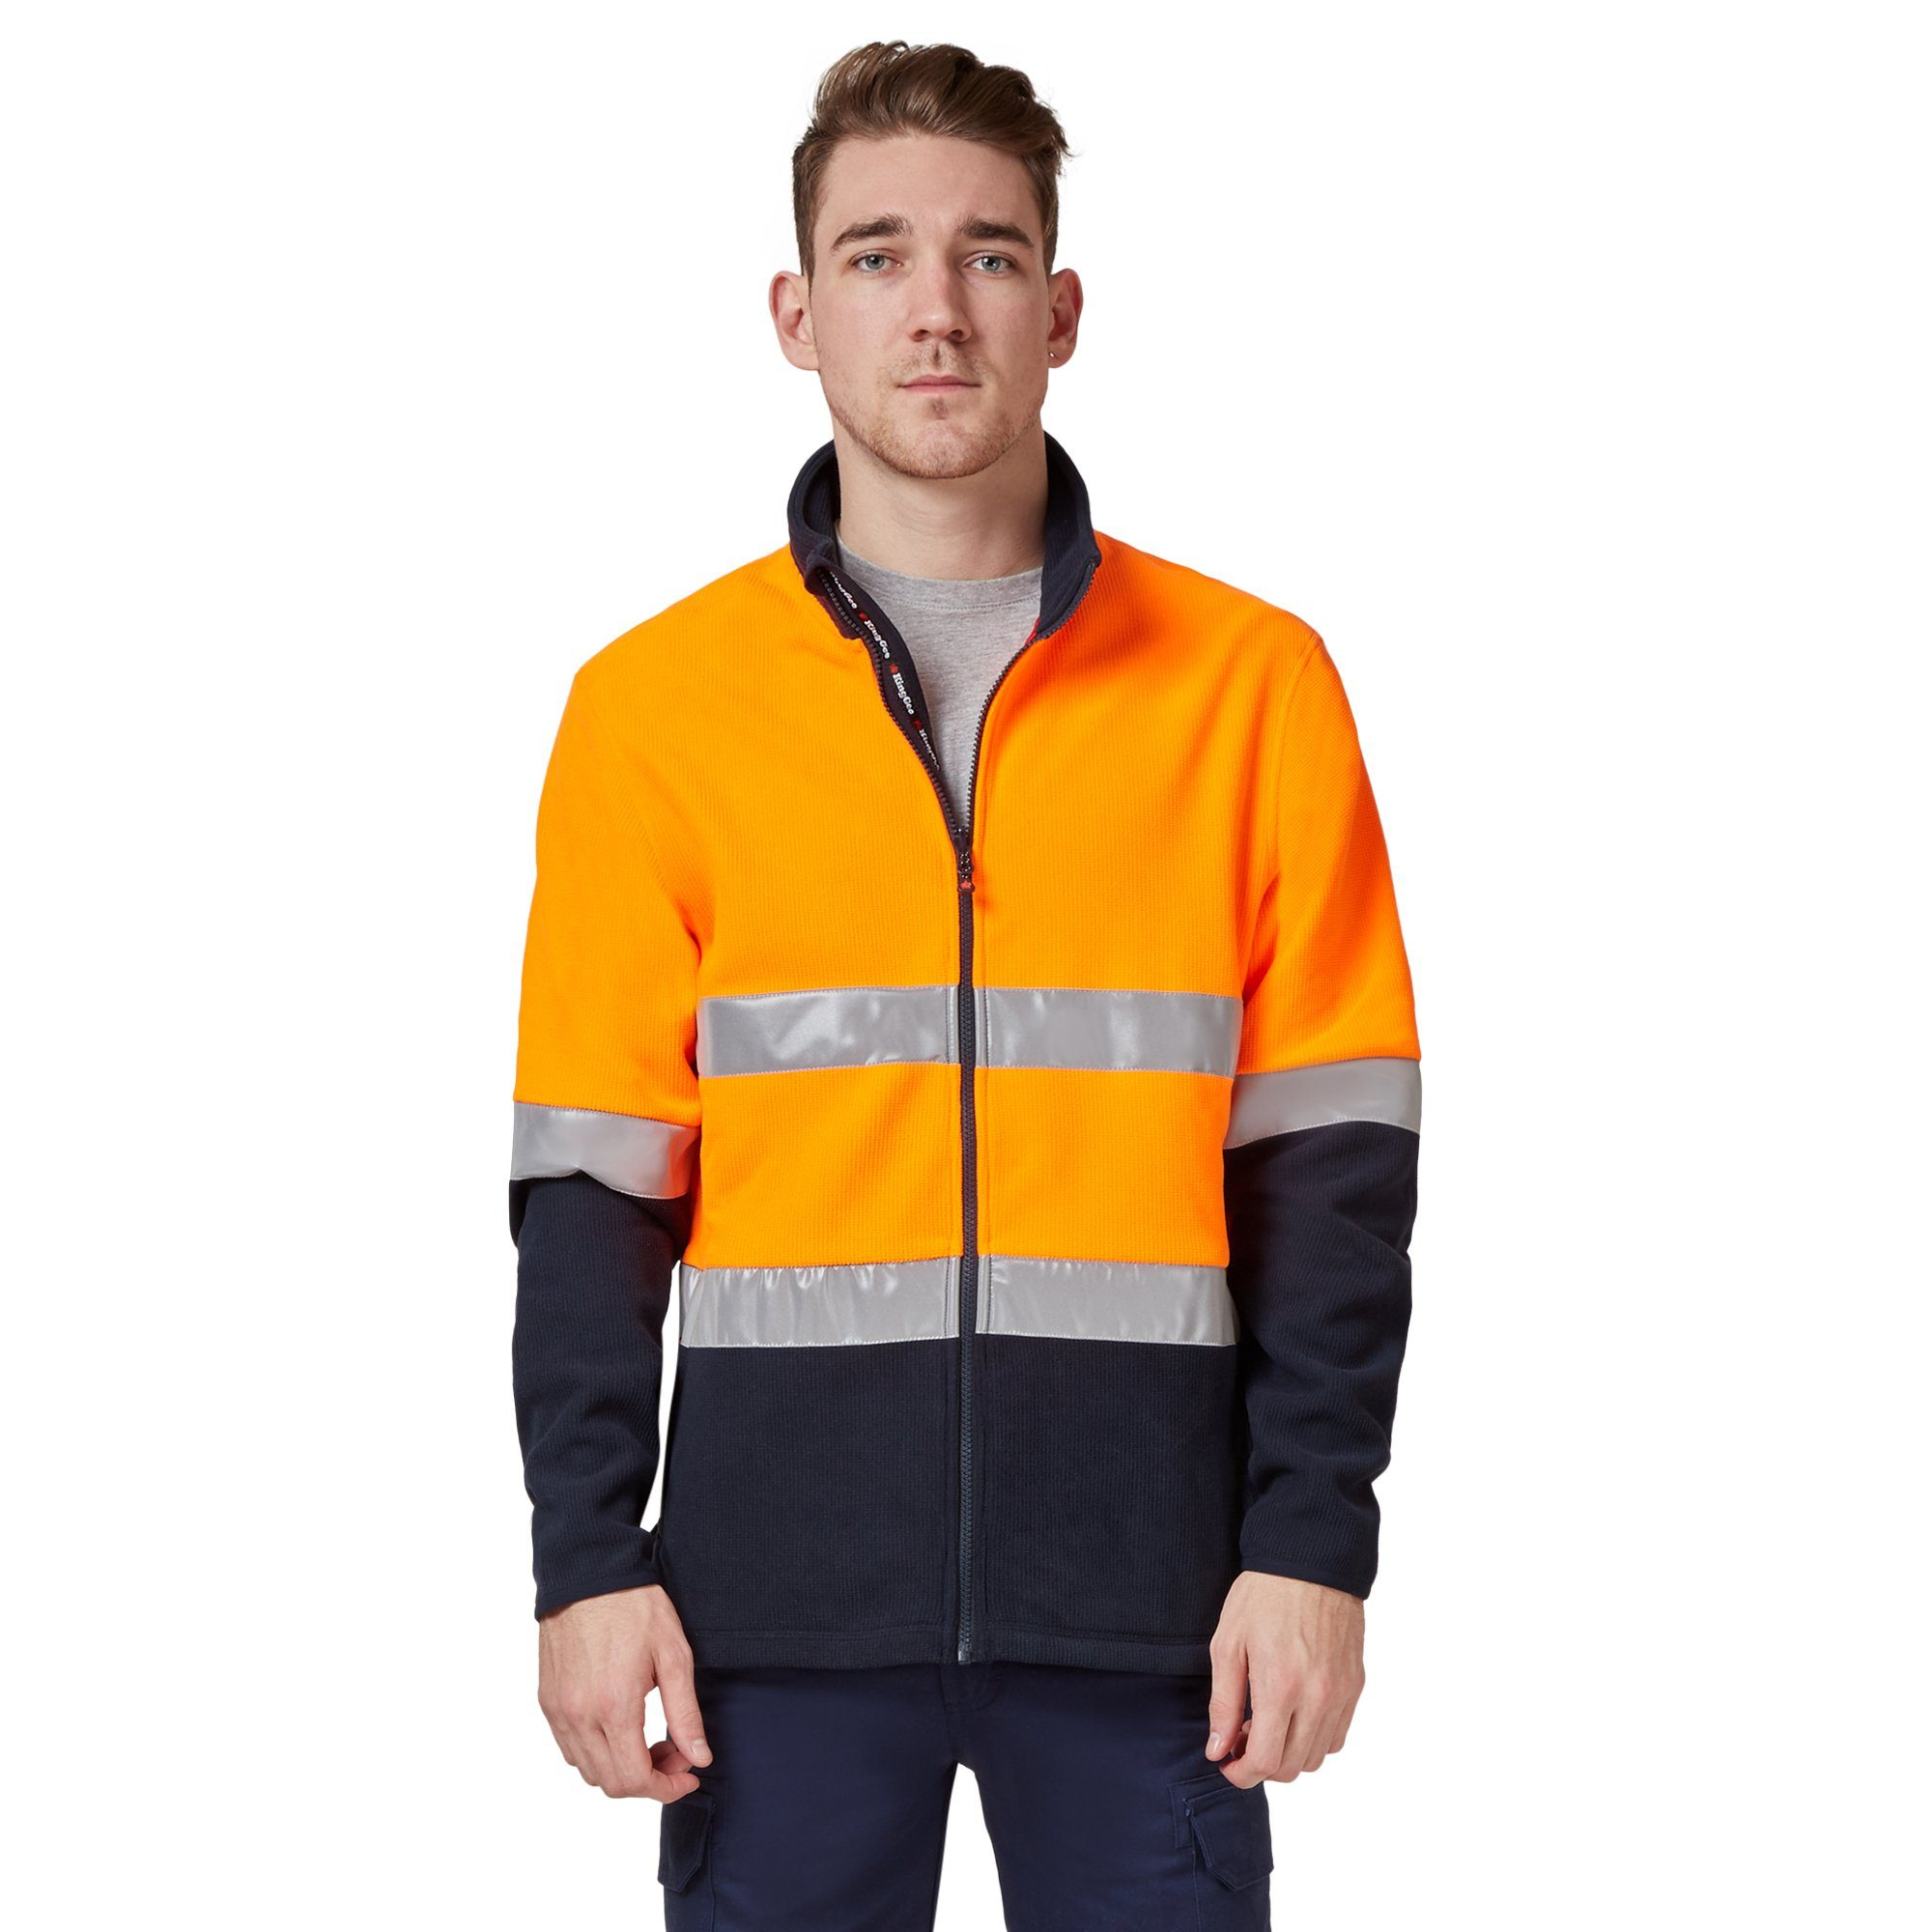 King Gee Reflective Full Zip Spliced Hi Vis Fleece - Orange/Navy Workwear Isbister & Co Wholesale